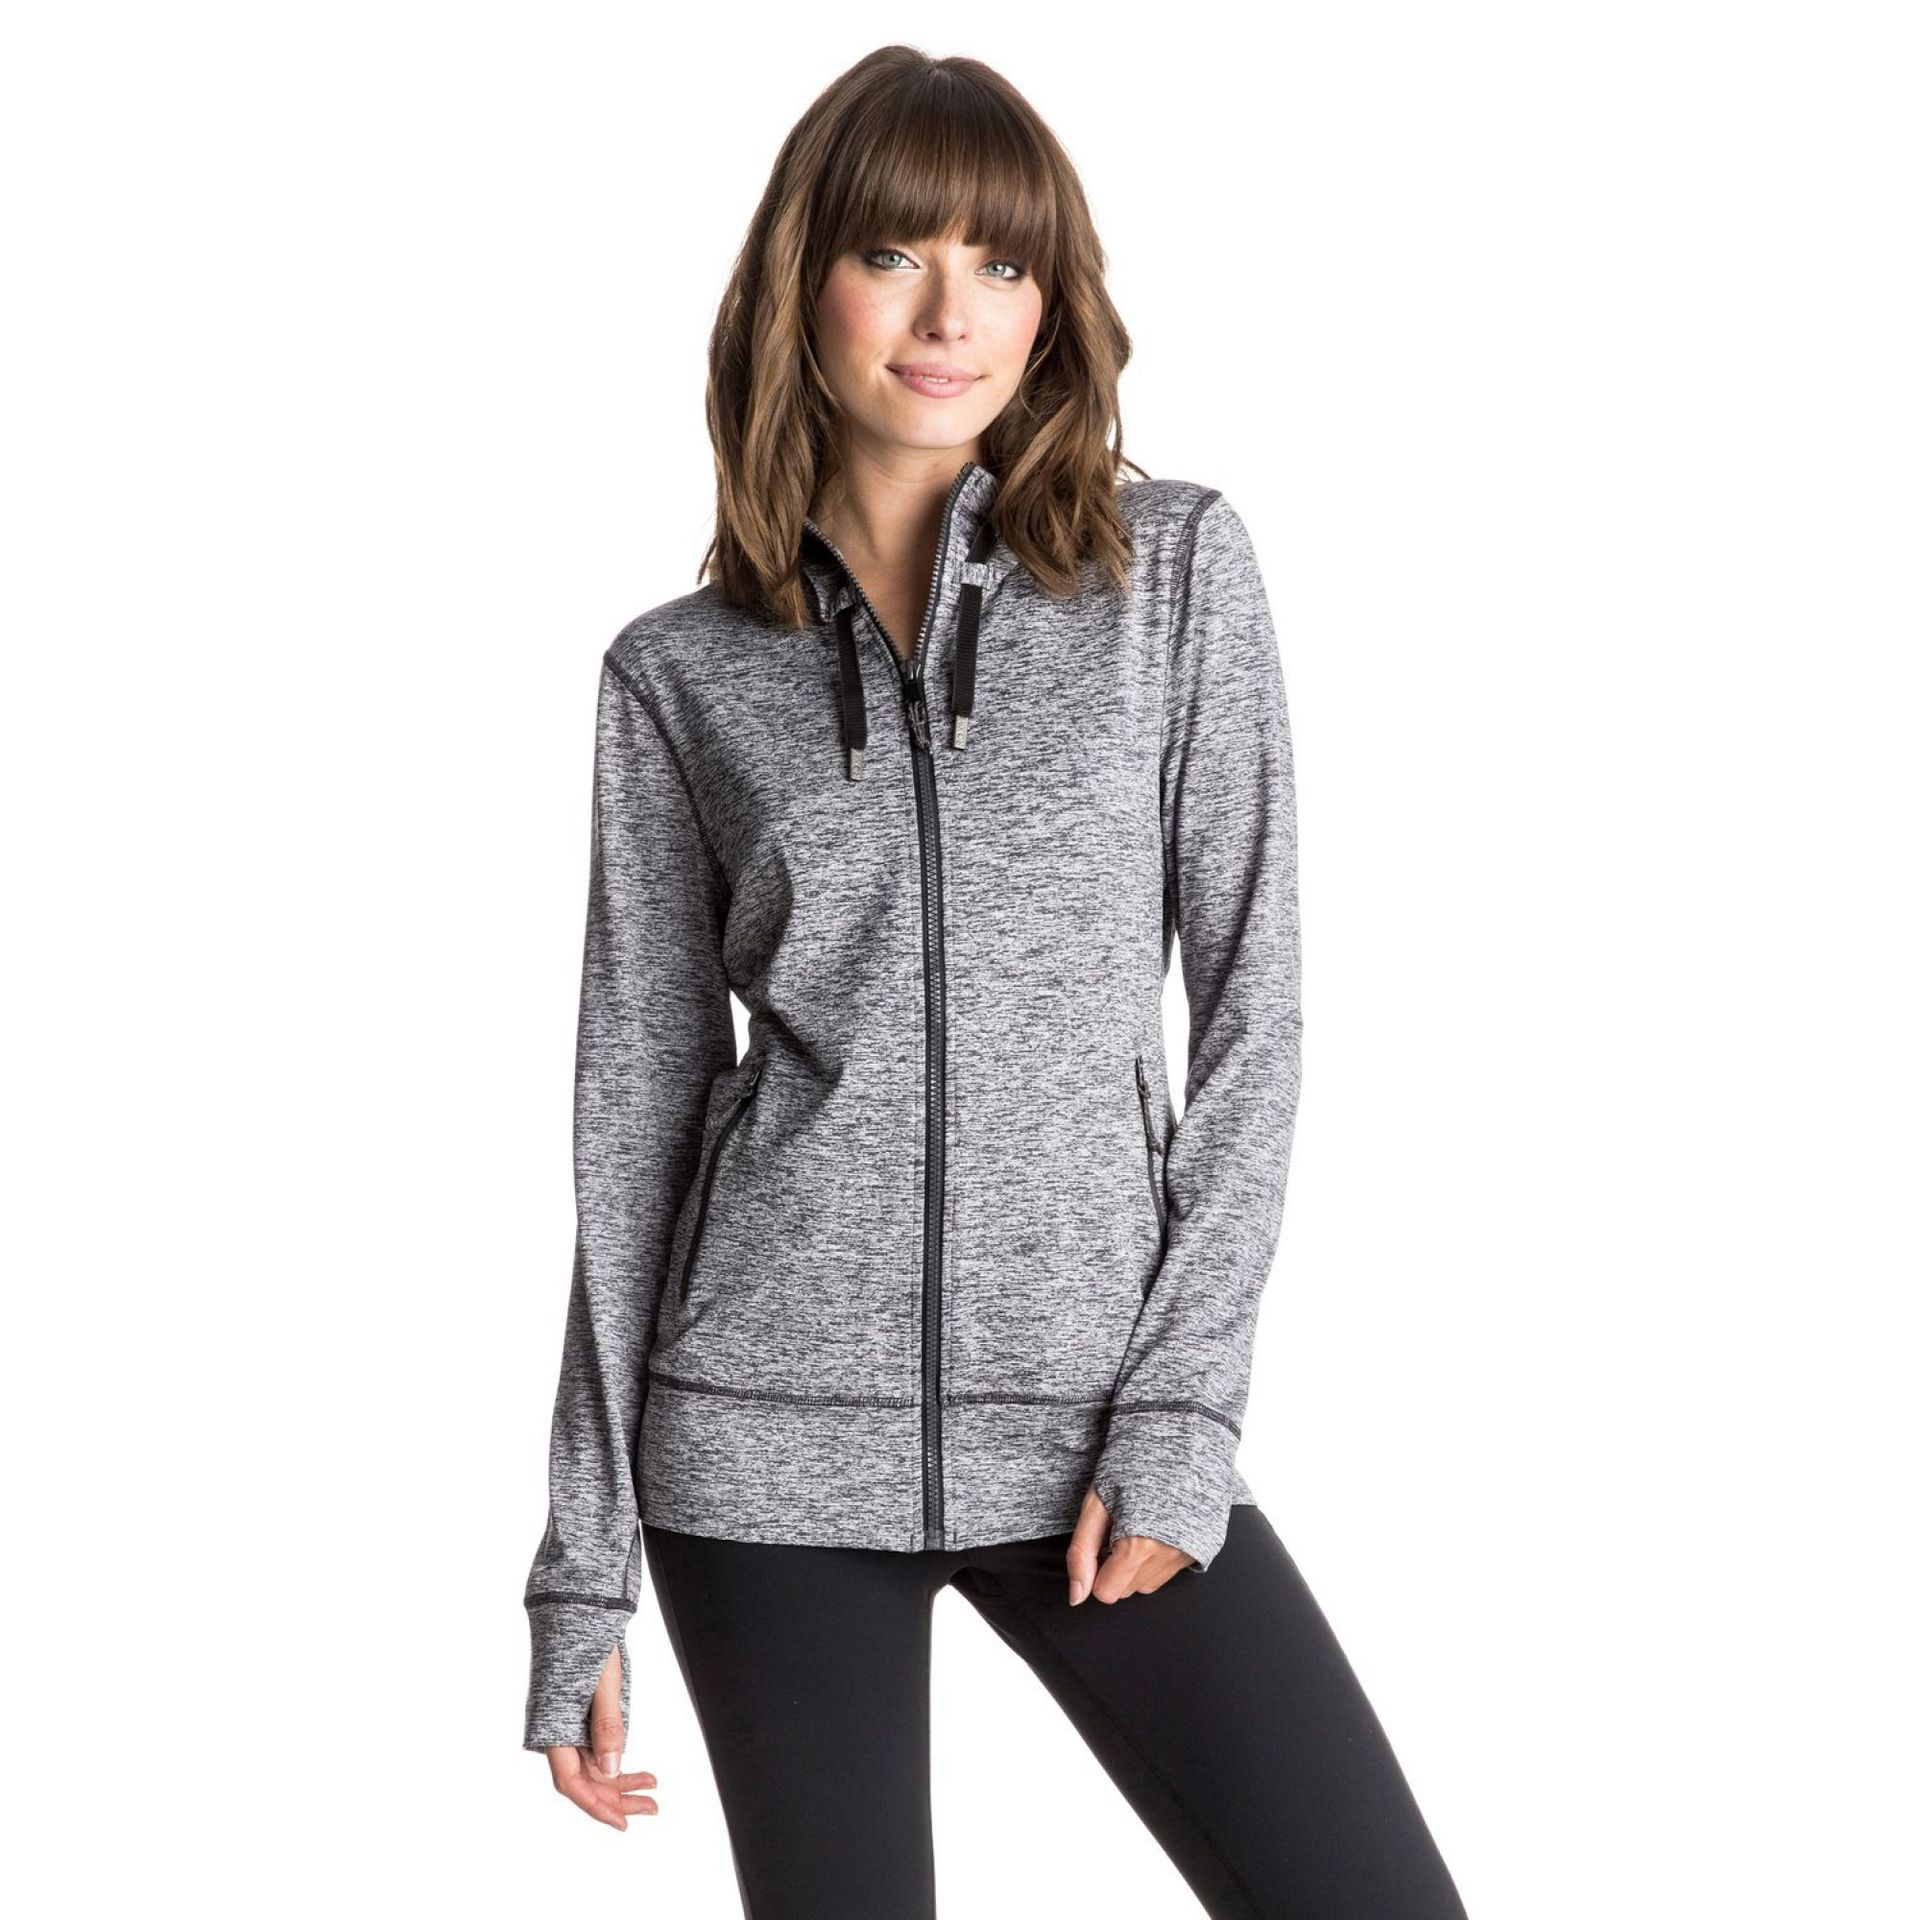 BLUZA ROXY EZ DOES IT ZIP-UP HOODIE KRY0 1